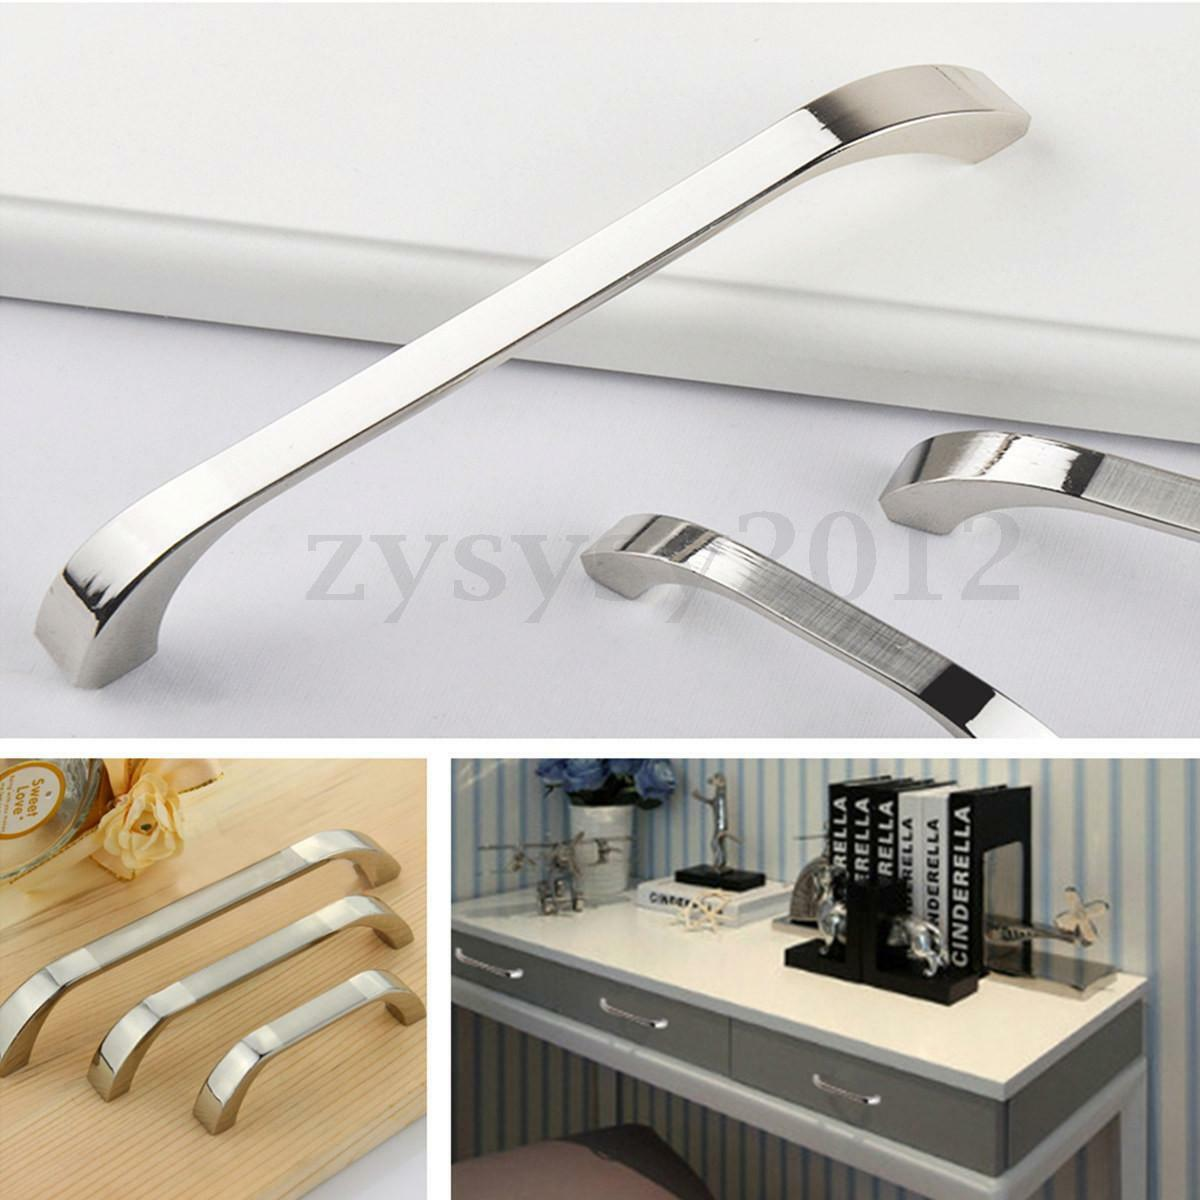 Handles For Kitchen Cabinets And Drawers: 1-8Pcs Modern Door Knob Cabinet Drawer Kitchen Cupboard